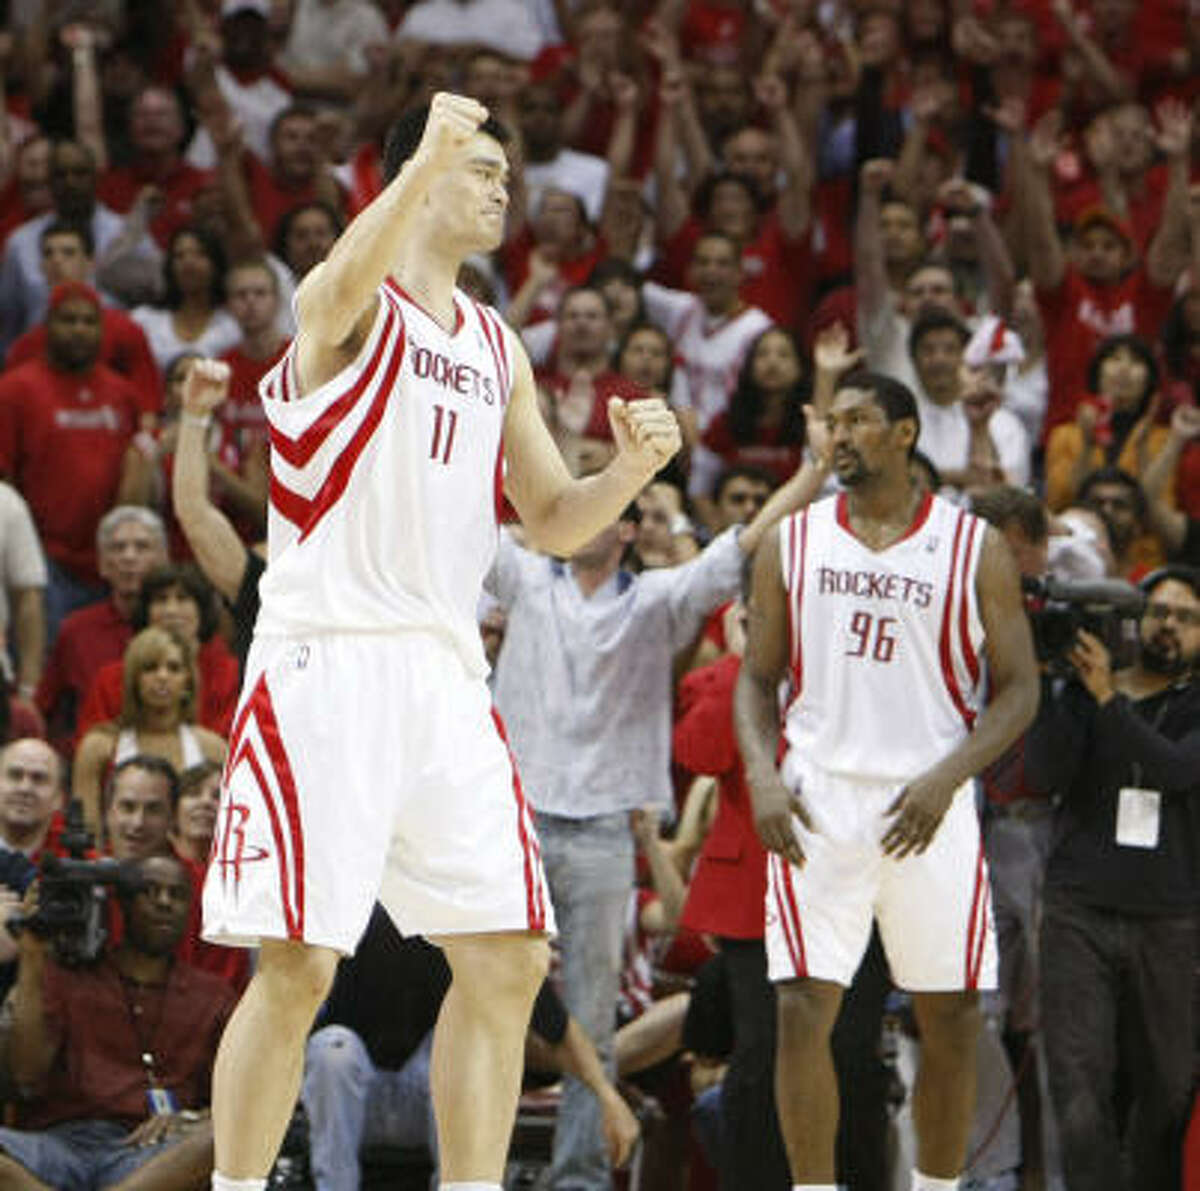 Rockets center Yao Ming (11) celebrates as the horn sounds ater beating the Portland Trail Blazers 89-88.